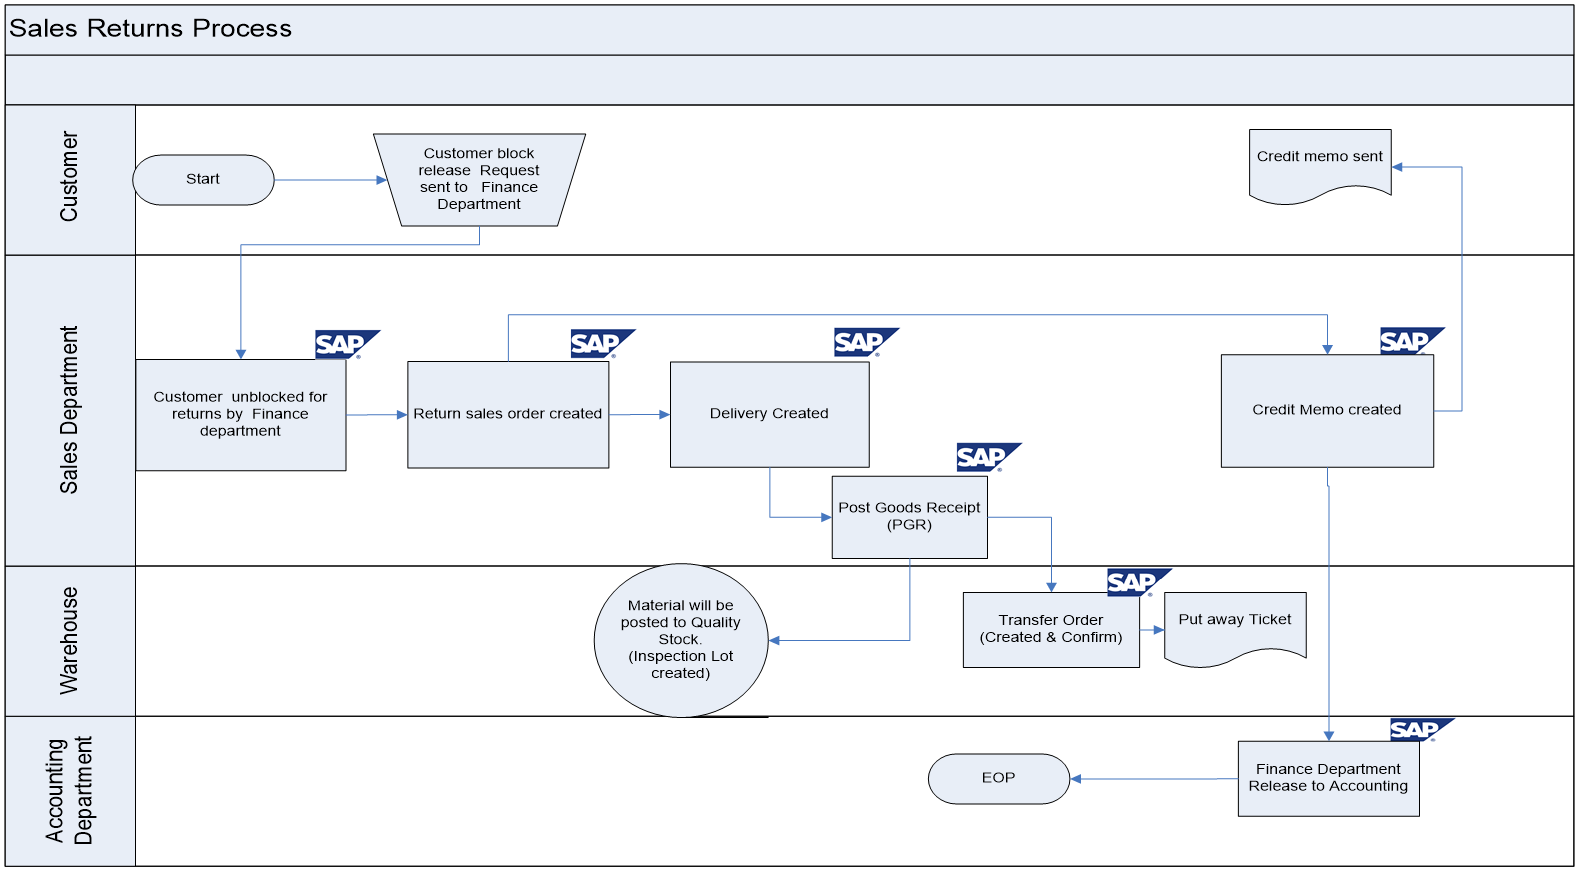 Sap sd business blueprint export sales return process scenario with export sales return process flow diagram in sap sd malvernweather Choice Image